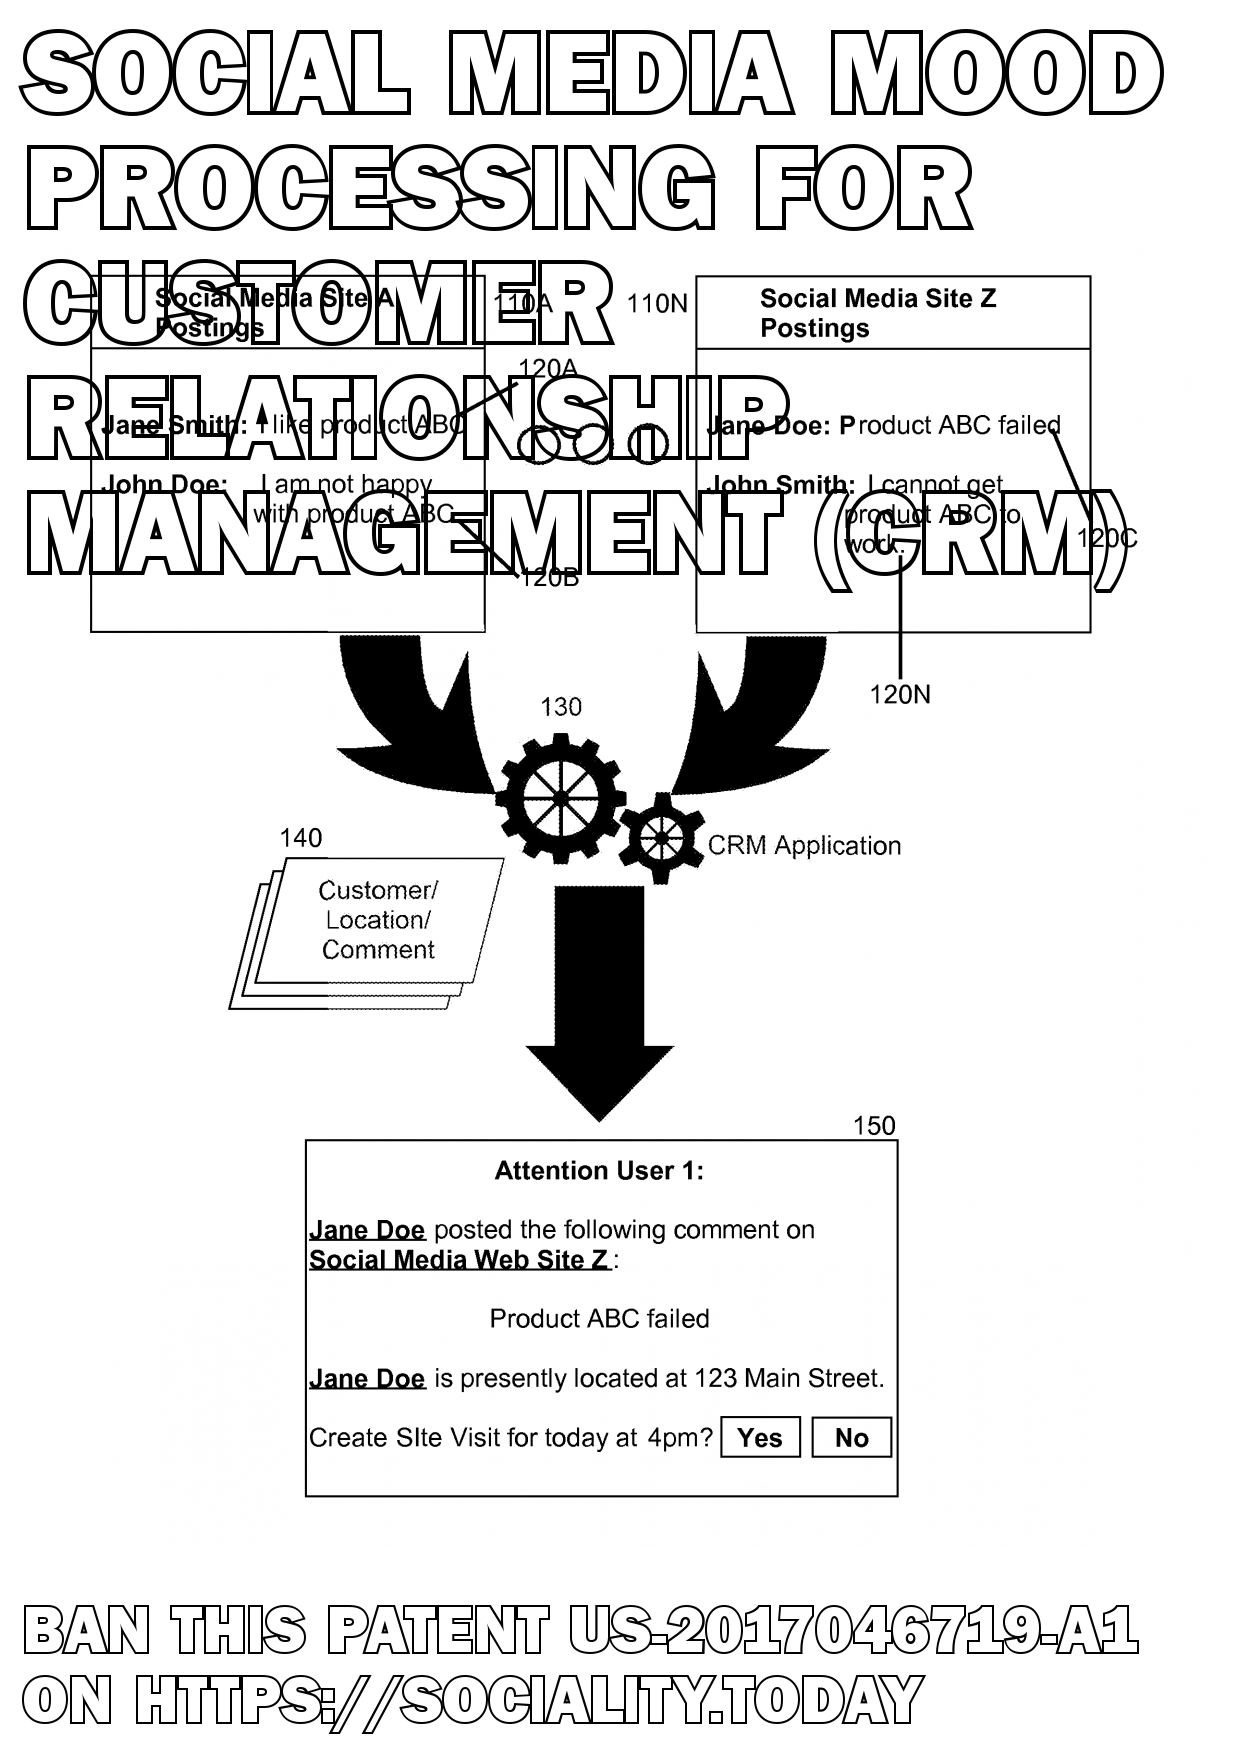 Social media mood processing for customer relationship management (crm)  - US-2017046719-A1